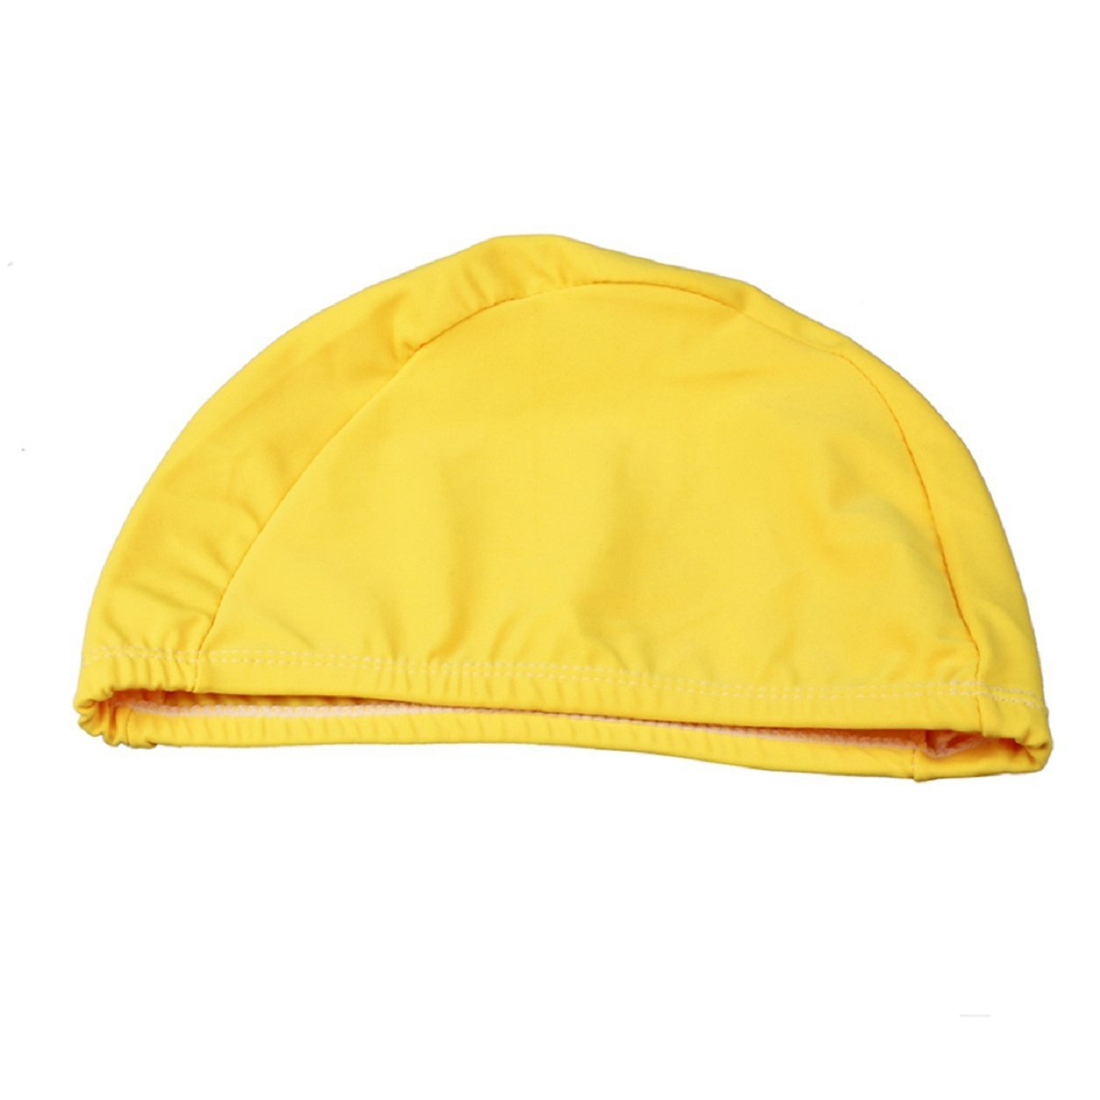 Adult Swimming Hats Unisex Outdoor Sports Stretch Cap Yellow